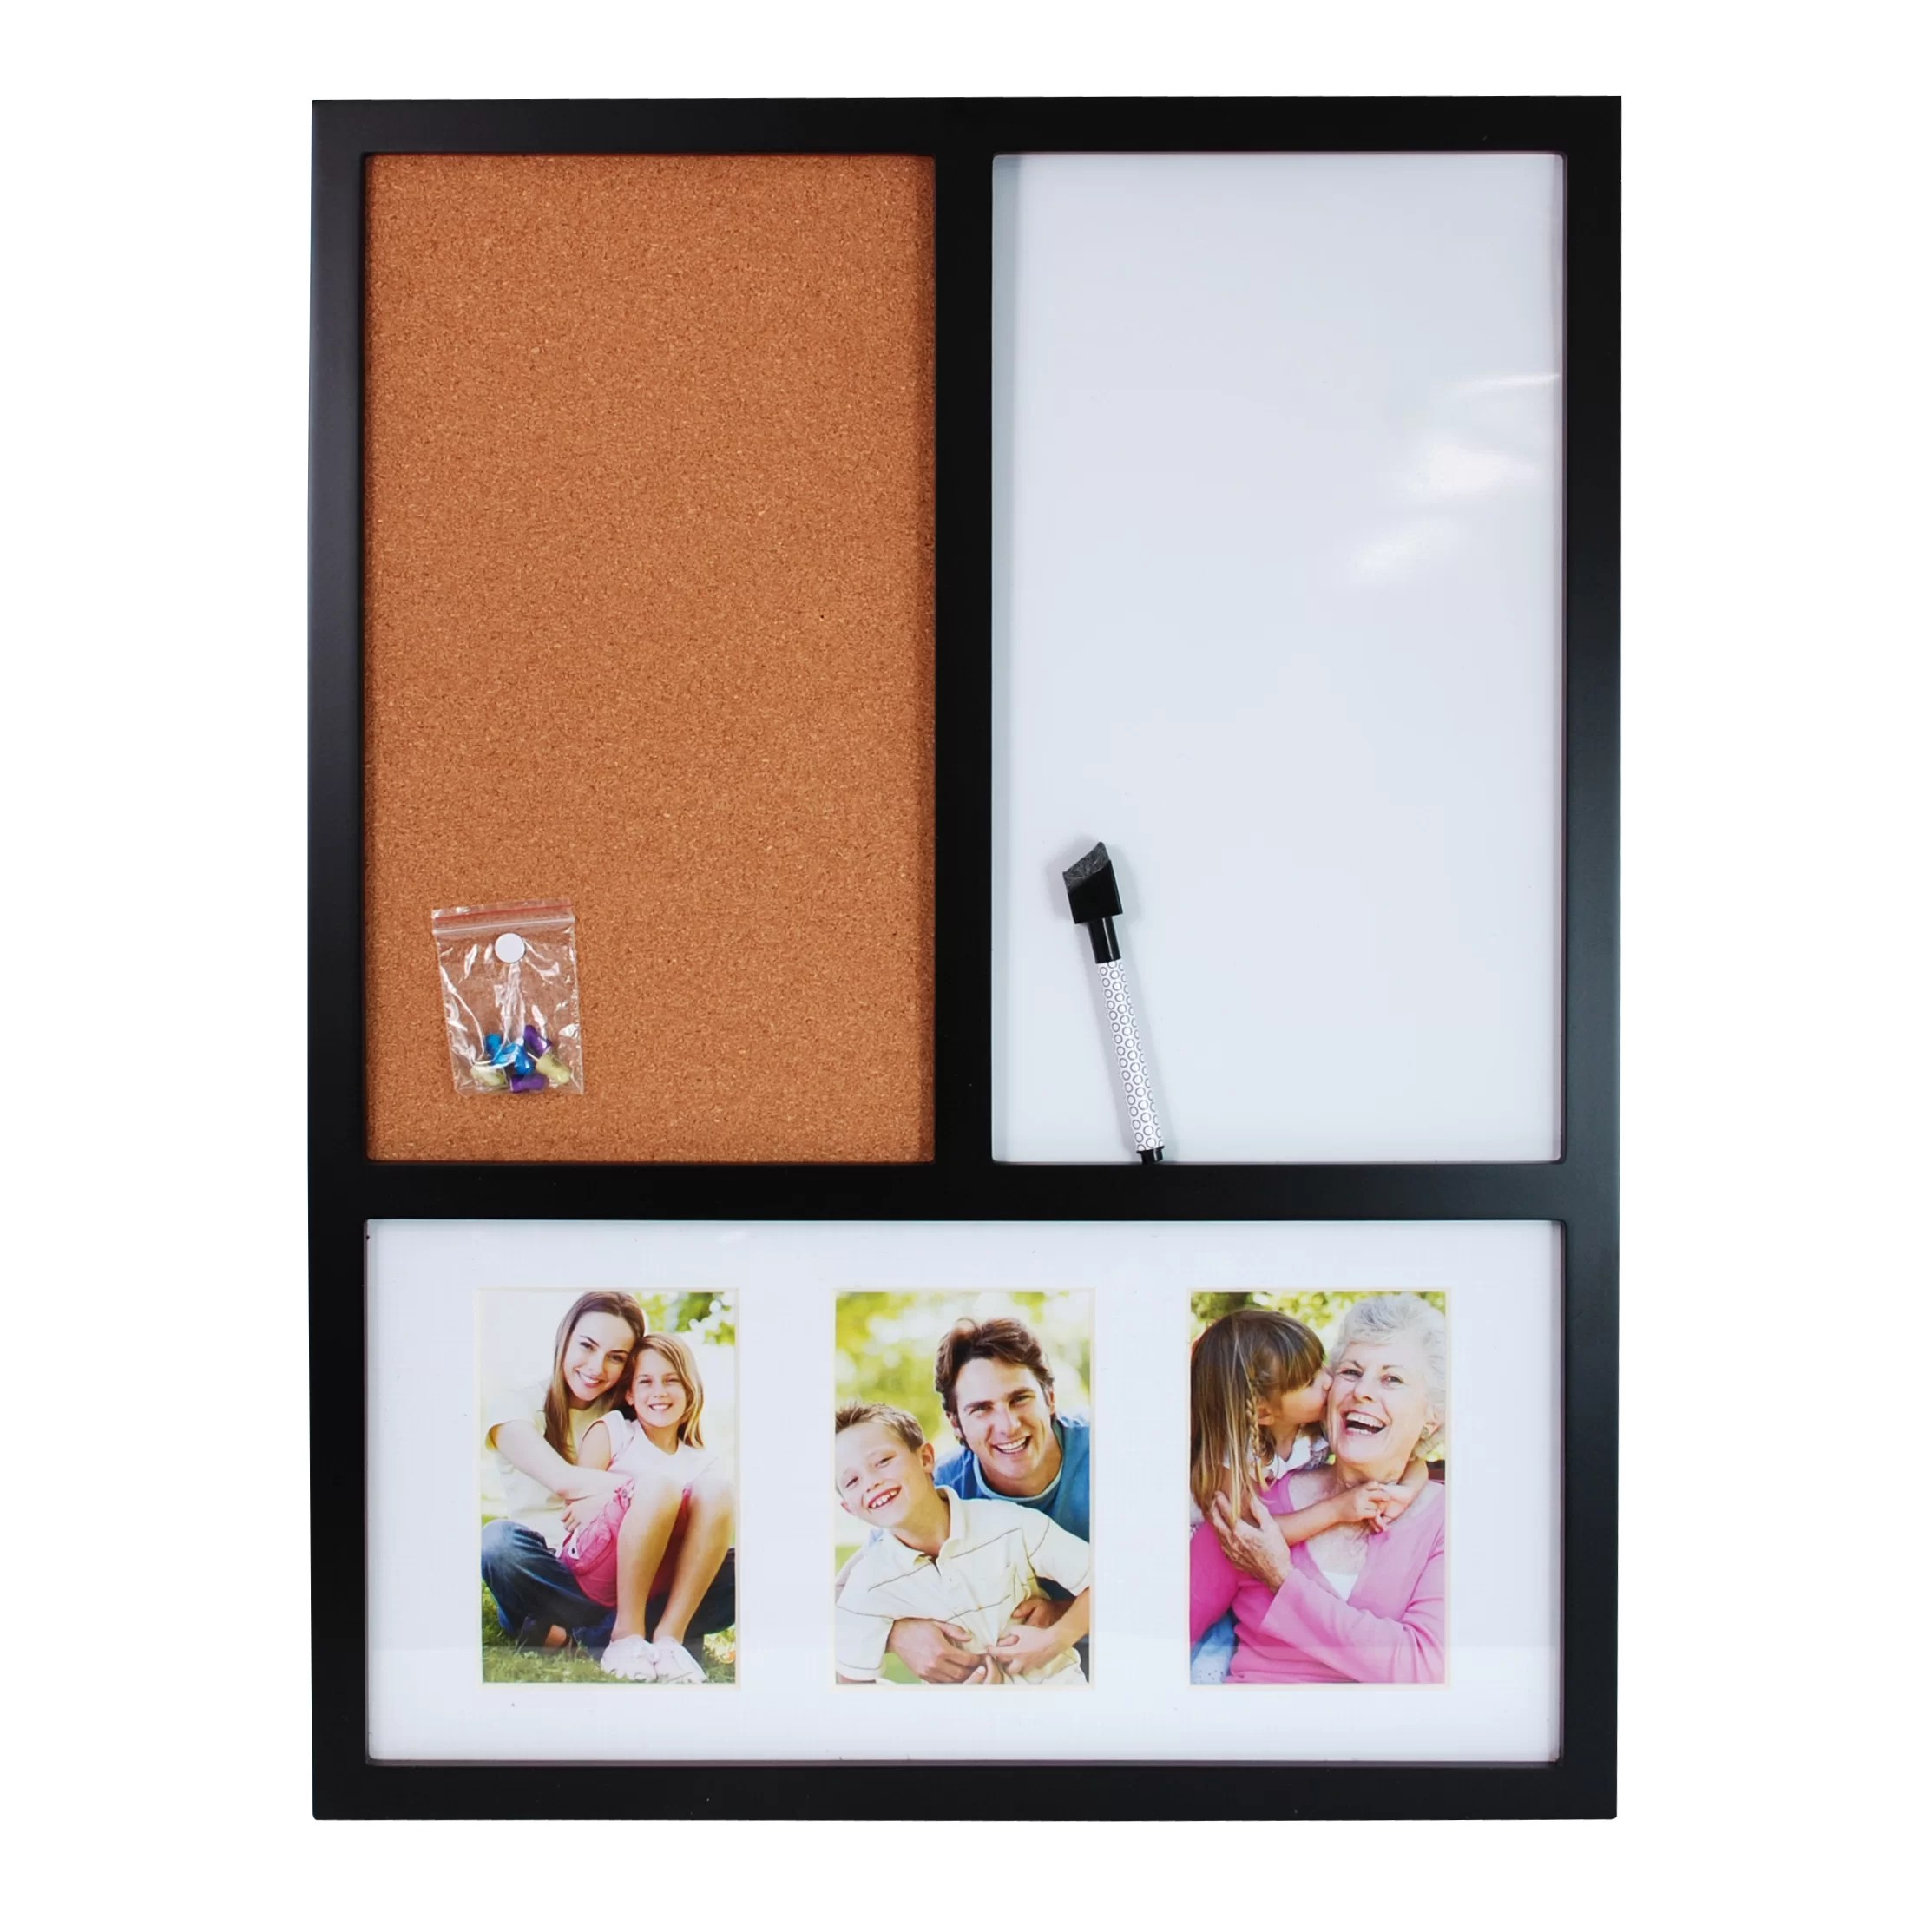 Nexxt Design Memo Board With Dry Erase And Cork Wall